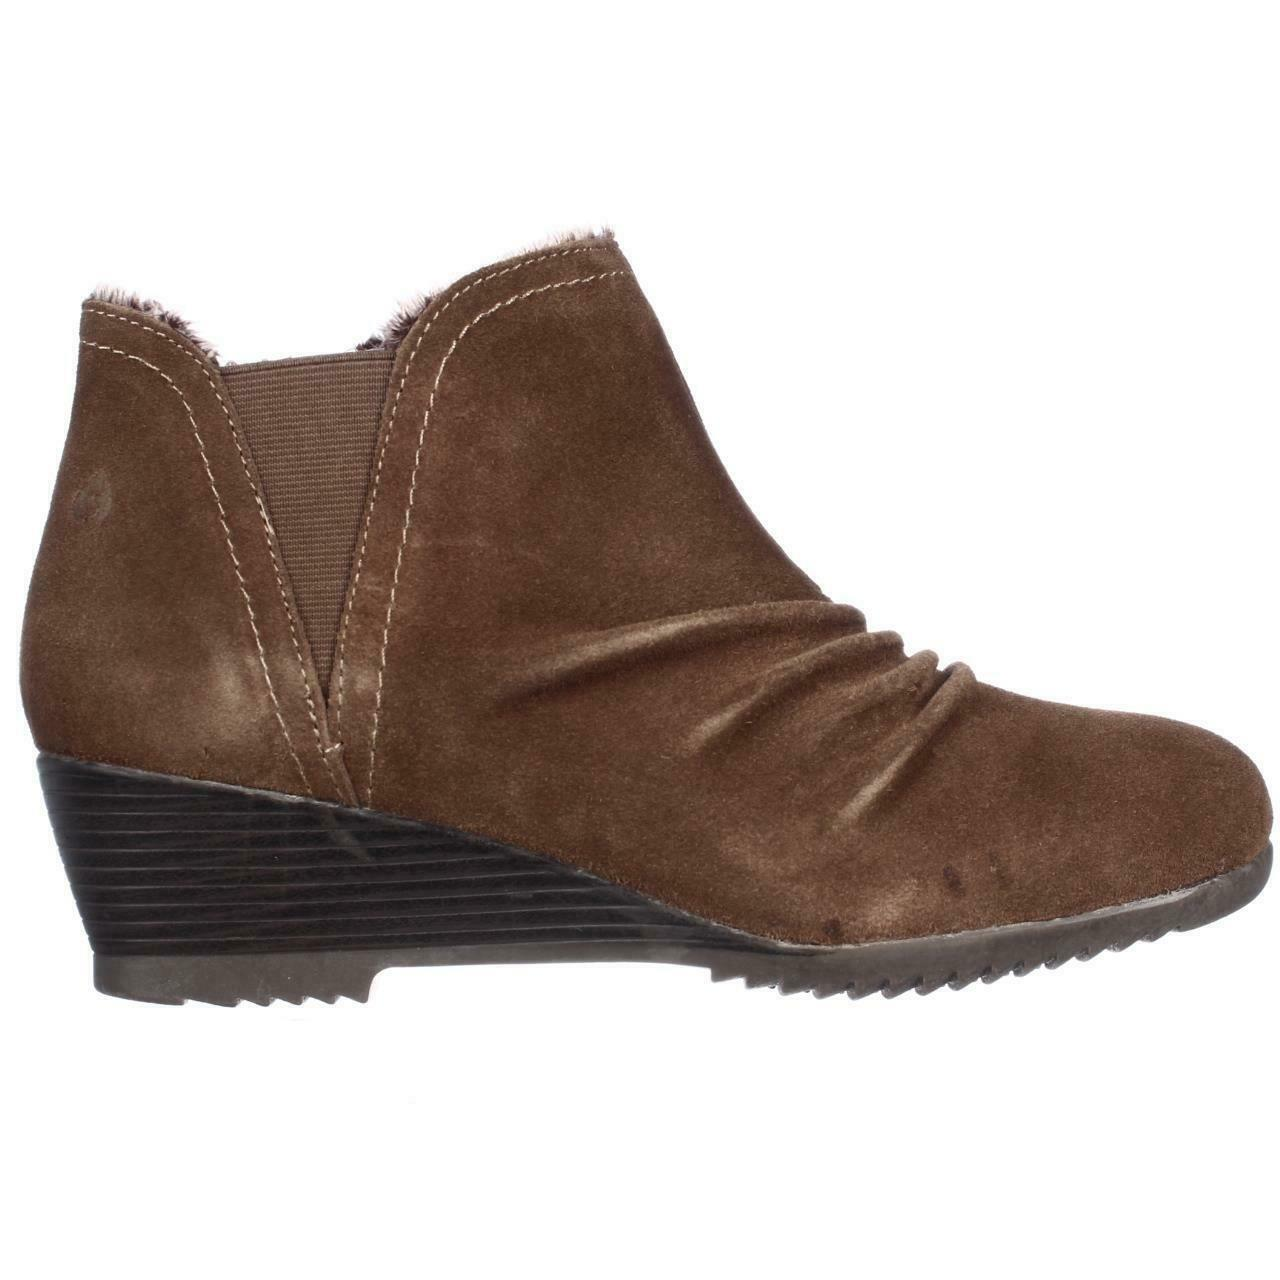 Sporto Drape Water-Resistant Ruched Suede Bootie Tan, Size 6.5 M